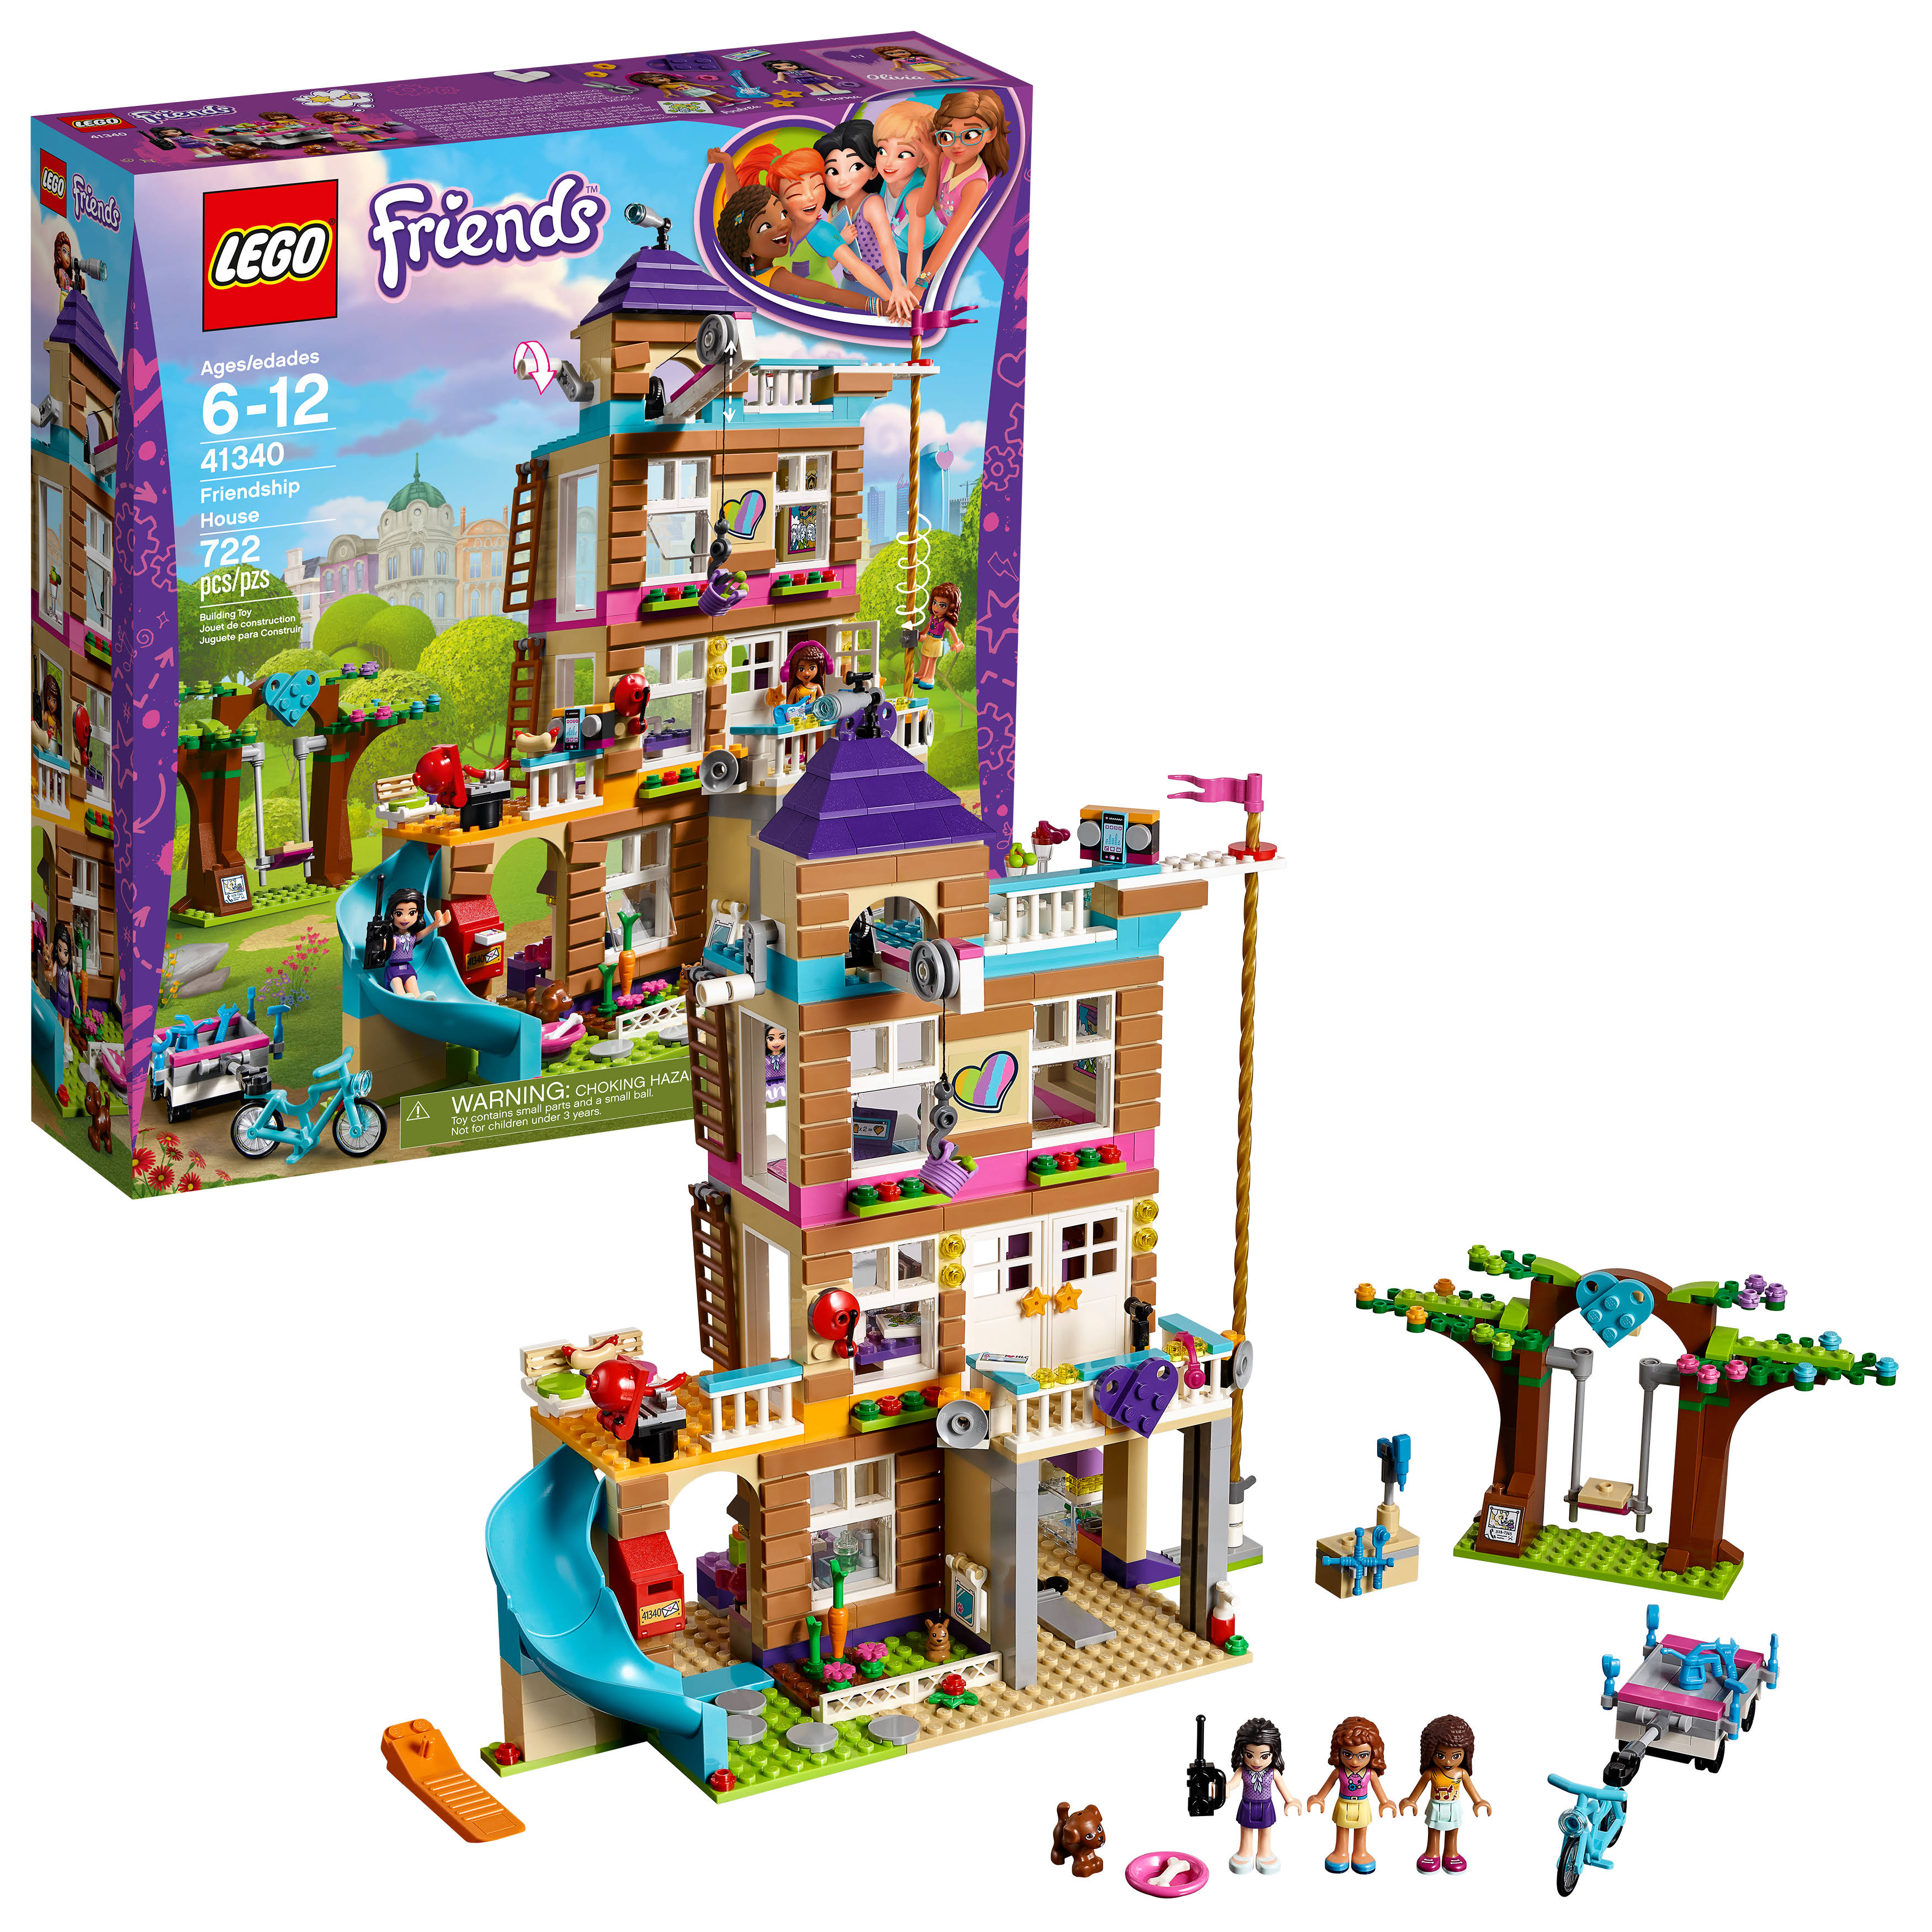 LEGO Friends 41340 Friendship House Building Kit - 722pcs